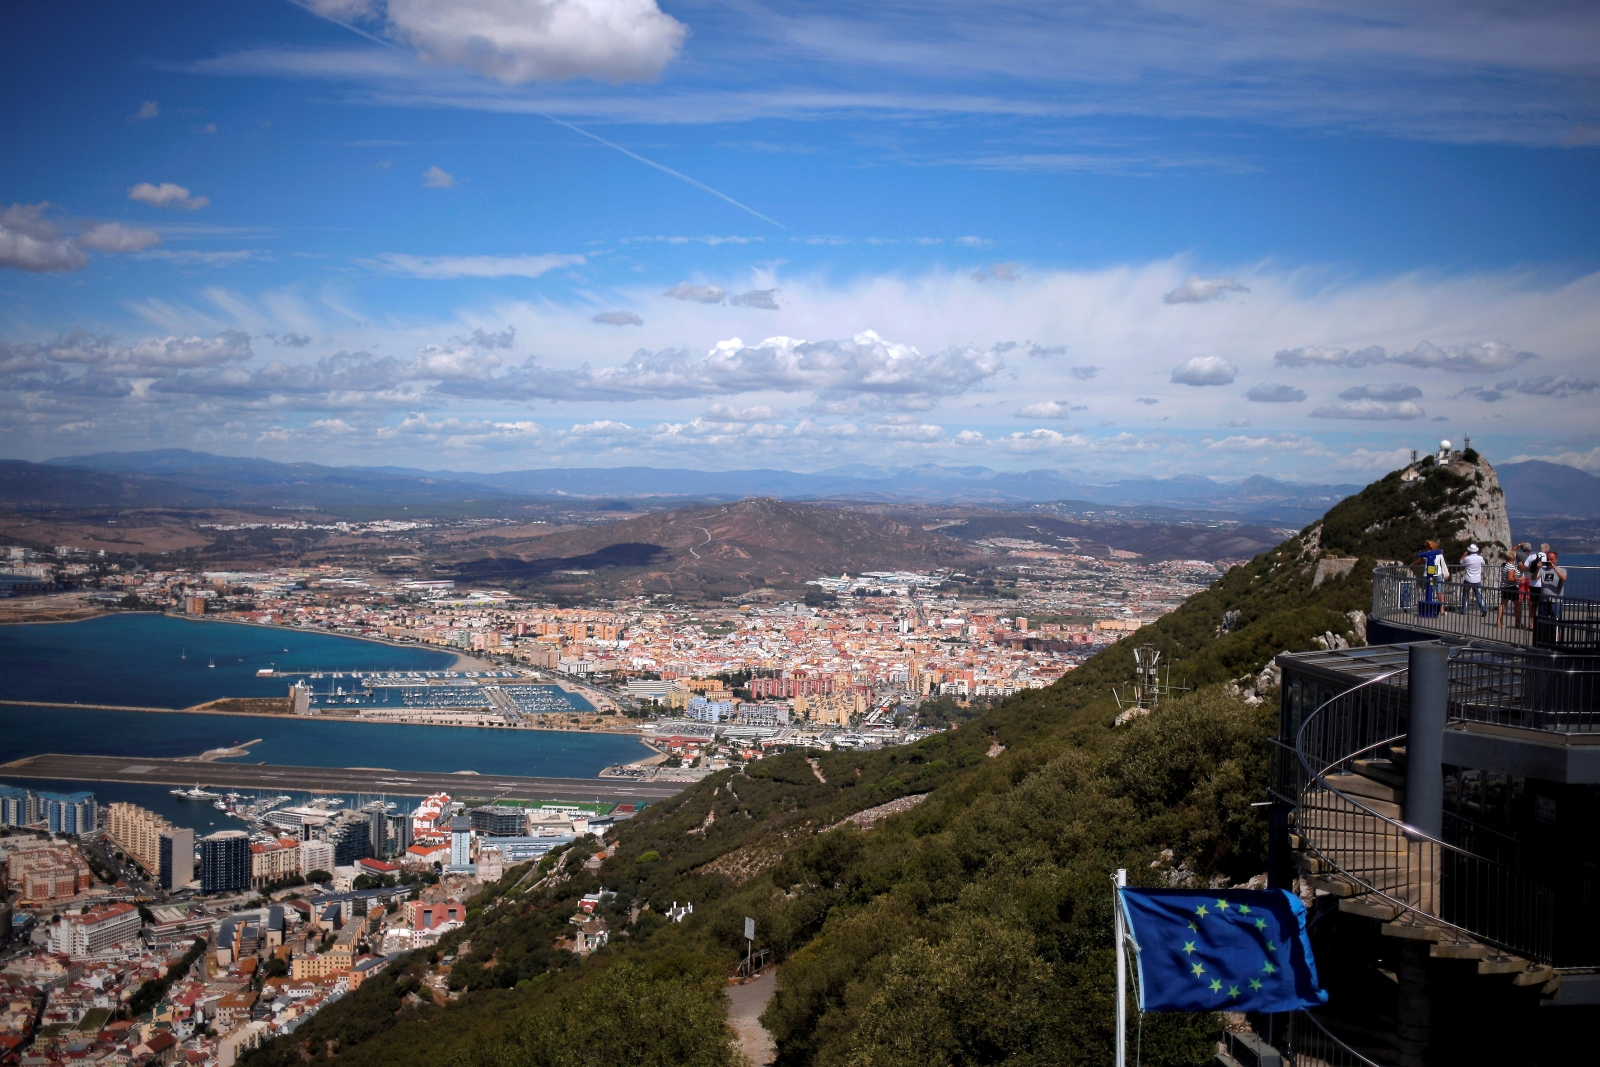 Spain Calls on United Kingdom to Use 'Common Sense' in Dispute Over Gibraltar